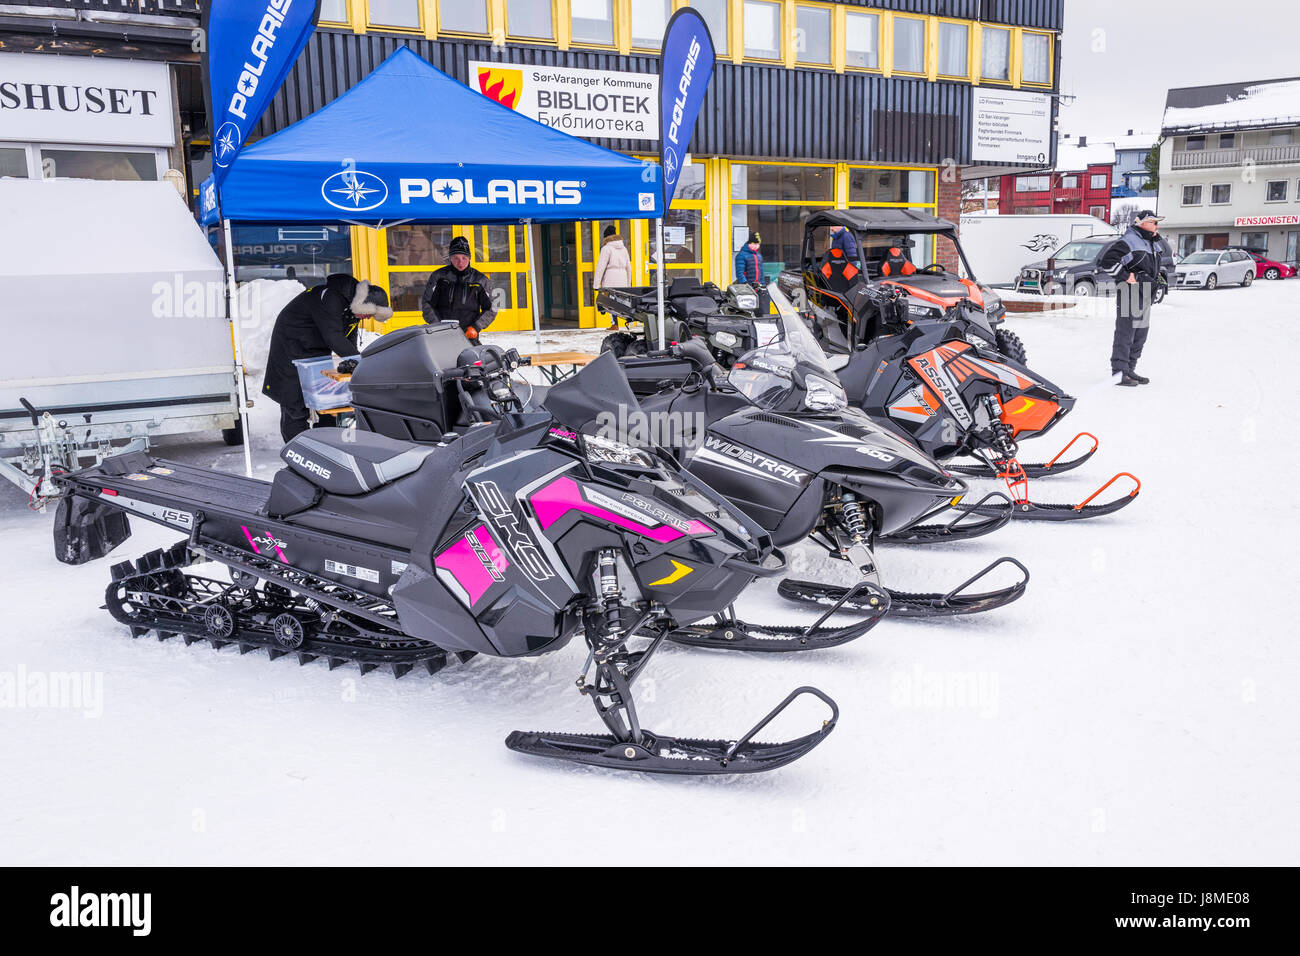 Exhibition of snowmobiles in Kirkenes, Finnmark County, Norway - Stock Image